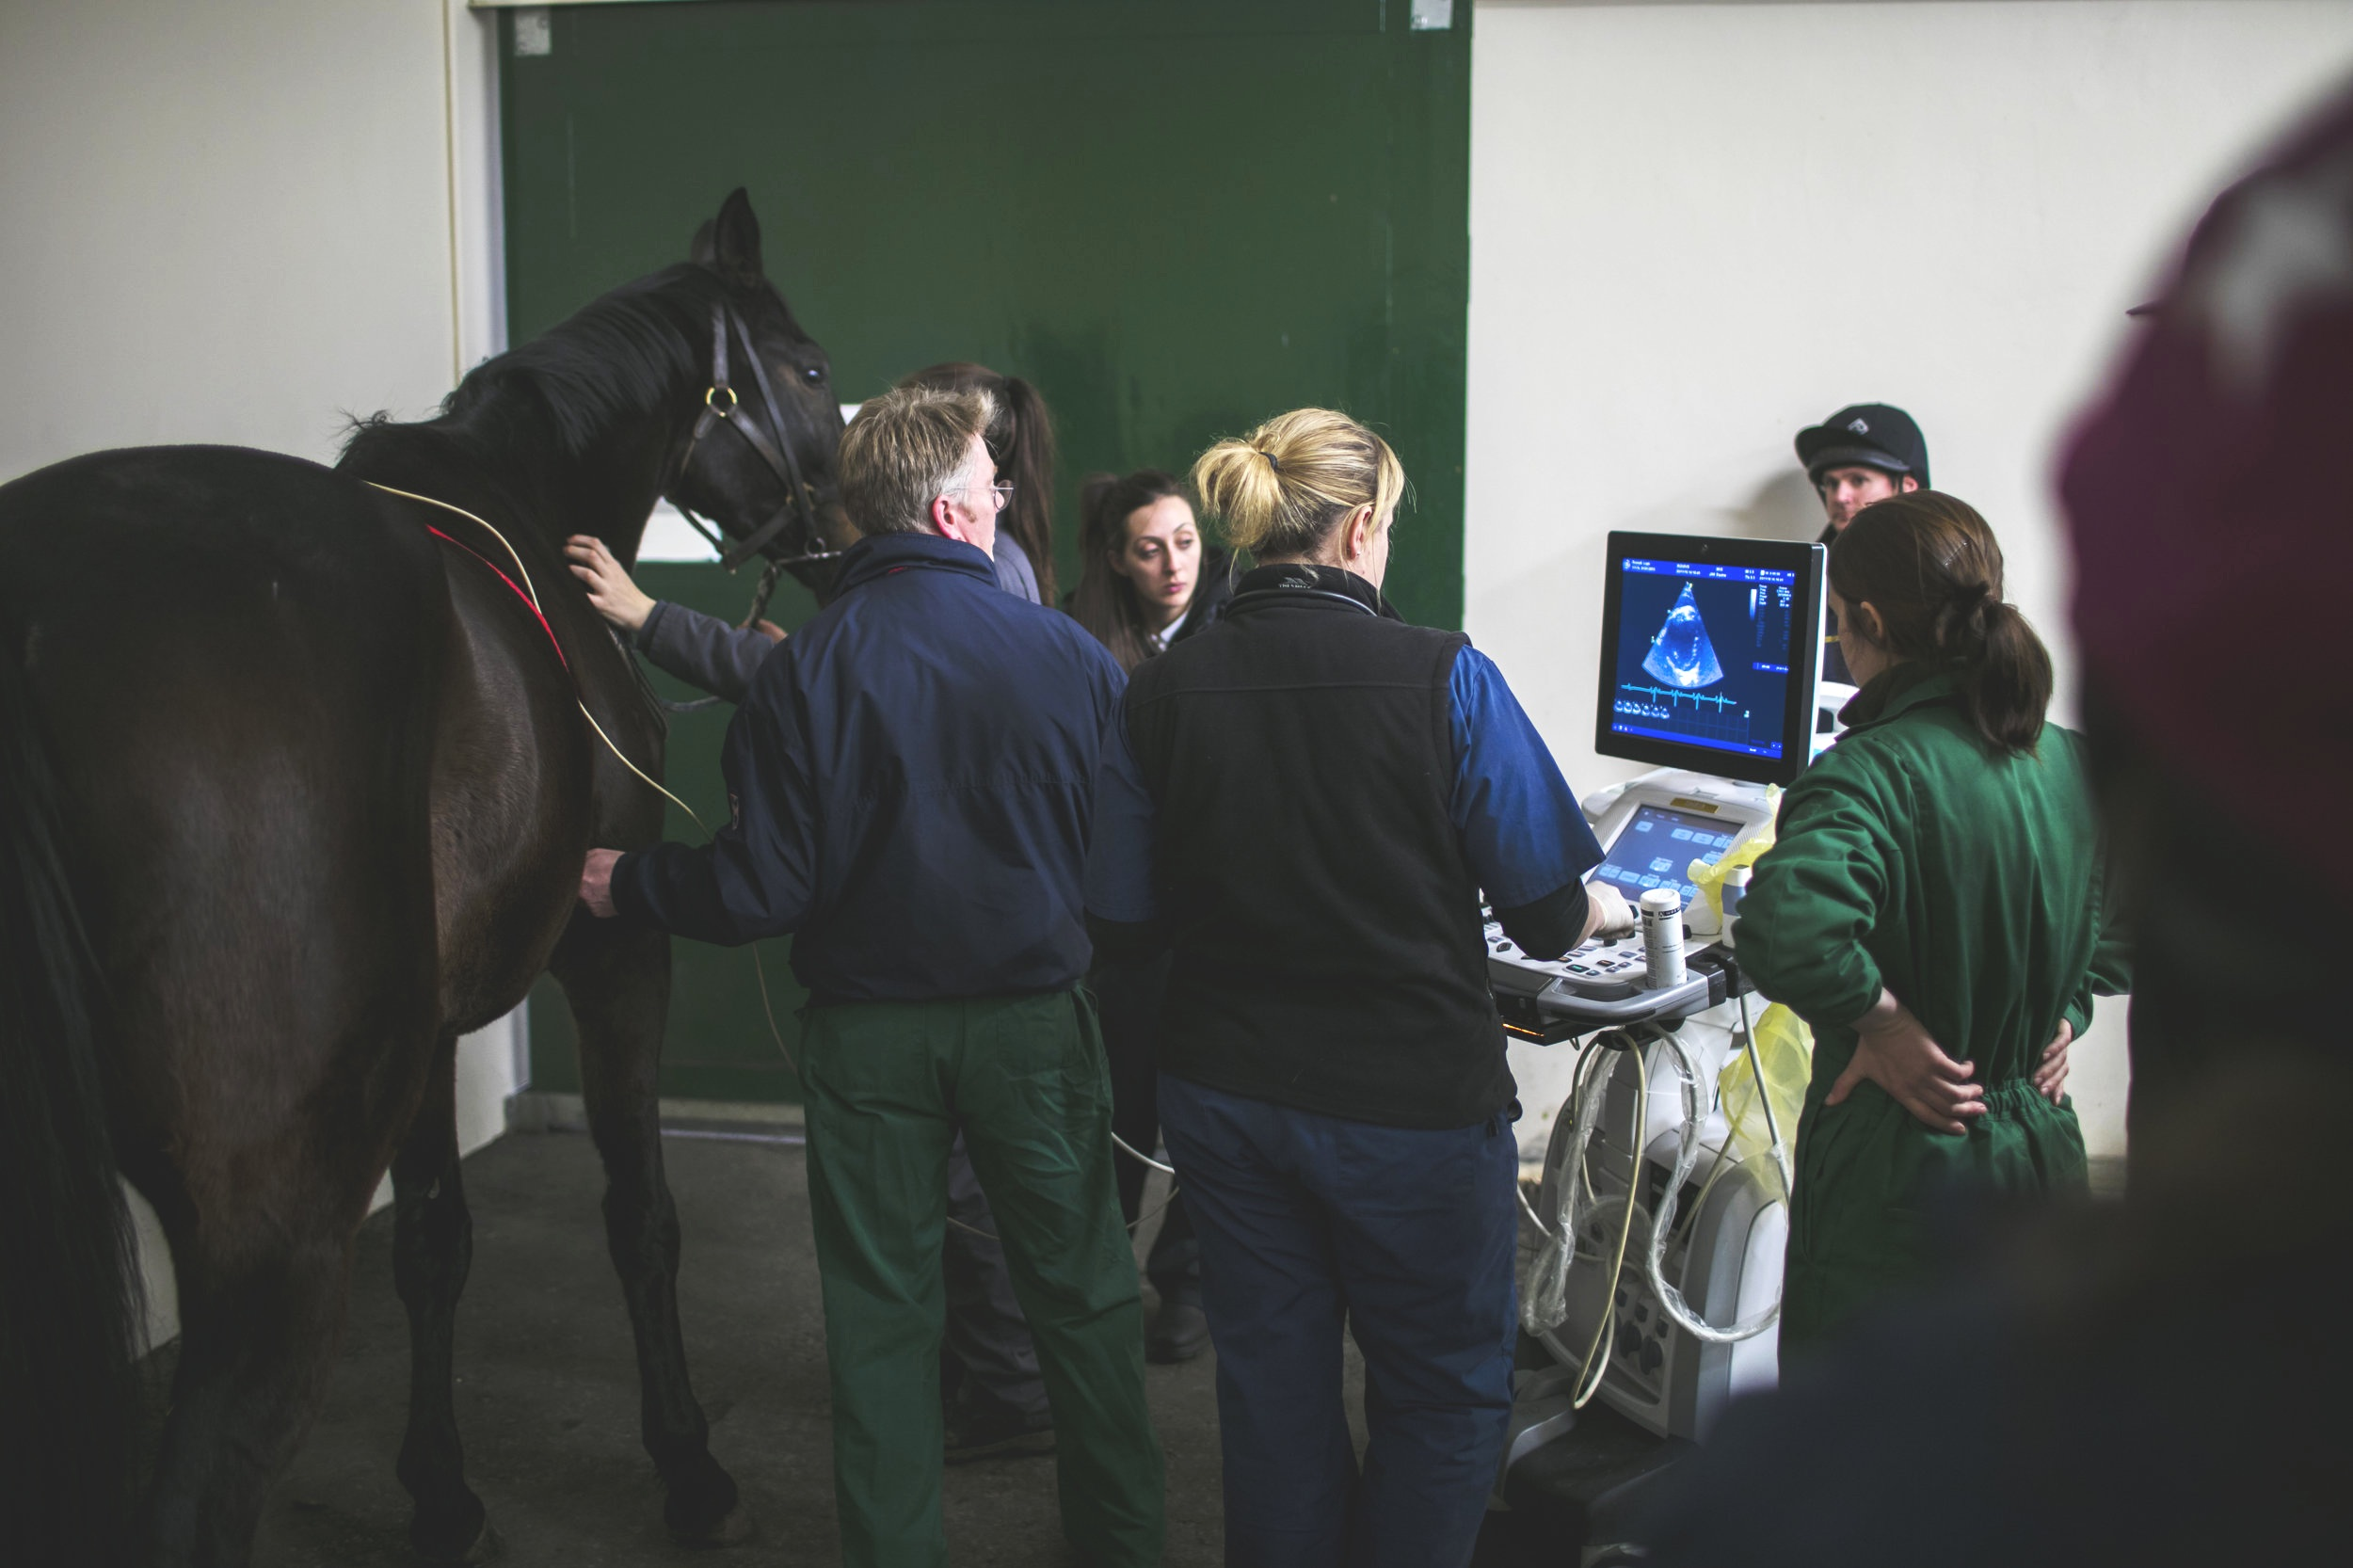 Advances in imaging of the equine athletic heart  By Francesca Worsman BVM&S MRCVS   Horserace Betting and Levy Board Senior Clinical Training Scholar in Equine Internal Medicine, Royal (Dick) School of Veterinary Studies, University of Edinburgh      Horses, through selective breeding for athletic excellence, have well-developed hearts that rarely cause problems compared to those encountered by humans. On occasions however, things go wrong. Due to their well-developed physiology, horses are at risk of a fibrillating heart (atrial fibrillation), while circumstantial evidence suggests that more severe heart rhythm abnormalities, somewhat akin to those experienced by human athletes, may cause sudden death. Ultrasound examination of the heart, known as echocardiography is a readily available tool for examining the heart and significant advances in ultrasound technology are likely to provide exciting information about the detailed function of the equine heart. A huge benefit of ultrasound is that it is non-invasive and can be carried out on a standing unsedated horse, so normal heart function is maintained during the examination.     The equine heart, like all mammalian hearts, has four chambers. The right atrium, which receives oxygen-depleted blood from the organs, passes it into the right ventricle which then pumps it to the lungs. Blood picks up oxygen in the lungs and then returns it to the left atrium, which then passes it onto the left ventricle for pumping to the organs of the body, including the muscles. Oxygen is thus delivered to the tissues and then the cycle repeats, more than 50,000 times per day! The left and right atria work in unison during heart filling (diastole), and the left and right ventricles work in unison during evacuation of blood from the heart (systole). Murmurs, often detected by veterinary surgeons when listening to hearts, are either caused by normal forward blood flow through the heart or by backflow leakage across the valves within the heart (regurgitation). Many of these murmurs are not a cause for concern, although some regurgitant murmurs are more severe and can cause problems with heart function. Similarly most heart rhythm abnormalities are innocuous and do not affect performance while others are more serious. In some horses, due to suspicion by a veterinary surgeon of a more significant problem, extensive evaluation of the heart is required; echocardiography is one of the key tools for diagnostic evaluation of the heart to assess the impact of any problems on athletic performance.    Image taken from the right side of the horse. Biplane views are on the left (4 chamber standard long axis view at top, short axis view at the bottom of the picture) and 3DE image on the right of the picture. In real-time the image can be manipulated as the heart is beating to visualise the cardiac structures from different angles. RV = right ventricle, TV = tricuspid valve, RA = right atrium, LV = left ventricle, MV = mitral valve, LA = left atrium.     Real-time three-dimensional echocardiography (3DE) is an exciting new tool that has recently become available in equine medicine and may shed light on important heart problems in horses, including those that cause poor performance. Compared to standard two dimensional echocardiography (2DE), which evaluates a single scan plane, 3DE involves the simultaneous collection of multiple scan planes from the heart to create a pyramid of scan data. 3DE is preferable to 2DE because in theory it does not rely on geometric assumptions on chamber shape to calculate chamber volumes. Also assessment of heart architecture and function (including that of valves) is likely to be more accurate as the technique provides unlimited viewing planes. Finally, for assessment of regurgitant flow, this technique should also be better because the image can be manipulated to better assess the leaky flow from those valves. In humans, for certain heart volume and muscle mass measurements, 3DE is more comparable than 2DE to cardiac magnetic resonance imaging (MRI), which is the acknowledged gold standard. Unfortunately, owing to the significantly larger size of horses, there is currently no equipment available for equine cardiac MRI. Therefore, 3DE could provide the next best option for more detailed equine cardiac evaluation.  Mitral valve regurgitation for example is commonly encountered in the equine athlete and, while often of no consequence, in more severe cases, it may lead to poor performance. Pathological consequences are due to backflow leakage causing secondary left atrial volume overload, and this will lead to an increased likelihood of atrial fibrillation. Potential advantages of 3DE in this context are more accurate assessment of the degree of volume overload, the regurgitant orifice (i.e., size of the hole!), and the valve structure and motion. Mitral valve regurgitation can be easily confirmed by 2DE, however it can be more difficult to ascertain the cause and severity. With 3DE, the software allows manipulation and therefore anatomic evaluation of the valves from many angles including 'face-on' views. This results in more detailed evaluation of subtle abnormal valve motion and confirmation of suspected findings, which can't be reliably detected by 2DE - eg. mitral valve thickening, mitral valve prolapse or ruptured chordae tendineae as the cause of the mitral valve disease. Geometric assumptions on volume are avoided as much more structural data is obtained.  A few specialist centres worldwide currently offer 3DE imaging for horses including the Equine Hospital at the Royal (Dick) School of Veterinary Studies, University of Edinburgh. In equine medicine we are still at an early stage of using 3DE as it is not validated in horses, therefore it is mostly used in research at the moment as opposed to routine diagnosis. As part of my research at Edinburgh, sponsored by the Horserace Betting and Levy Board, I have been assessing the left atrial volume using 3DE from thoroughbreds in training. One of my aims was to determine the variability of equine left atrial volume measurement using a special 3DE software analysis package to see how much variation there was between successive 3DE measurements by the same person. Forty-four National Hunt thoroughbreds in training were scanned to obtain the 3DE views of this chamber. We then graded them to exclude images of reduced image quality so that we were only assessing good quality images of the left atrium. In total 24 horses were included—aged 4-9 yrs, weighing 411-534kg. I analysed the images retrospectively, after the horses were scanned. I didn't include any horses with grade >3/6 heart murmurs. This was because we first need to validate 3DE with normal, healthy hearts. Random generated order measurements were obtained by a single person on four occasions. Real-time three-dimensional end-systolic (ESV) and end-diastolic (EDV) left atrial volumes were measured using 3DE software, and the results were then statistically analysed.  The preliminary results gave an average EDV of 593ml (range 349ml-1.029L), while ESV was 381ml (range 200-695ml). Lower observer variation for ESV measurements was observed (16%) compared to EDV (23%). There was good agreement between measurements.     (image 2)     Re-orientated 3DE image of the mitral valve (MV) during systole. LA = left atrium, LV = left ventricle.  So far the research has shown that 3DE, and the software for analysing it, is a quick, effective and practical tool for obtaining equine left atrial volume. This may provide a really useful means of better assessing the consequence of problems with the mitral valve in horses. Results may improve further with refined measurement guidelines. Further research being carried out includes comparing 3DE left atrial volume measurements to 2DE measurements and comparing 3DE left volume measurements in healthy hearts to those with mitral valve regurgitation. In the future there will likely be validated 3DE measurements for all structures of the equine heart. We have an equine cardiology group here at Edinburgh with PhD students who are also pursuing research into the use and benefits of 3DE for assessing the heart in racehorses as well as using other exciting ultrasound technologies to assess heart muscle function. They are concentrating on better assessment of the ventricles in the equine athlete and looking at training-induced changes in these chambers, with racehorses in training as a specific focus. There is no doubt that in the near future, after more validation, 3DE will likely be the preferred option for evaluation of cardiac abnormalities in the racehorse for the diagnosis of disease, for monitoring performance and to provide a more accurate prognosis. Novel imaging techniques such as 3DE will provide important insight into the physiology of the horses heart thereby helping us better understand cardiac causes of poor performance as well as those very rare, but high-impact, cases of sudden death.   Acknowledgements:    The author would like to acknowledge manufacturer GE Healthcare for the equipment and software and thank Lucinda Russell for the use of her horses.